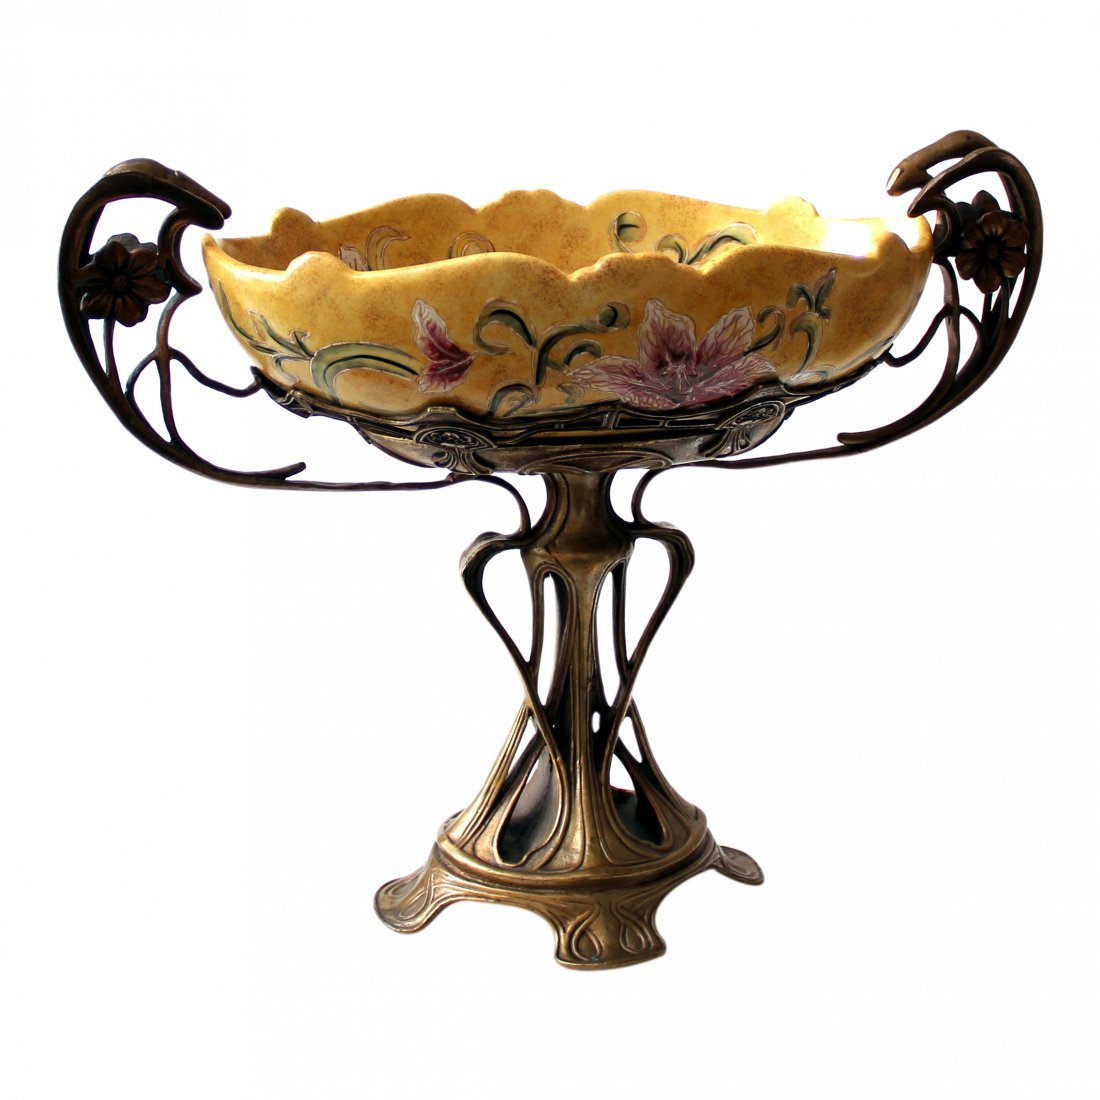 French Art Nouveau Centerpiece, Bronze, Majolica 19th C